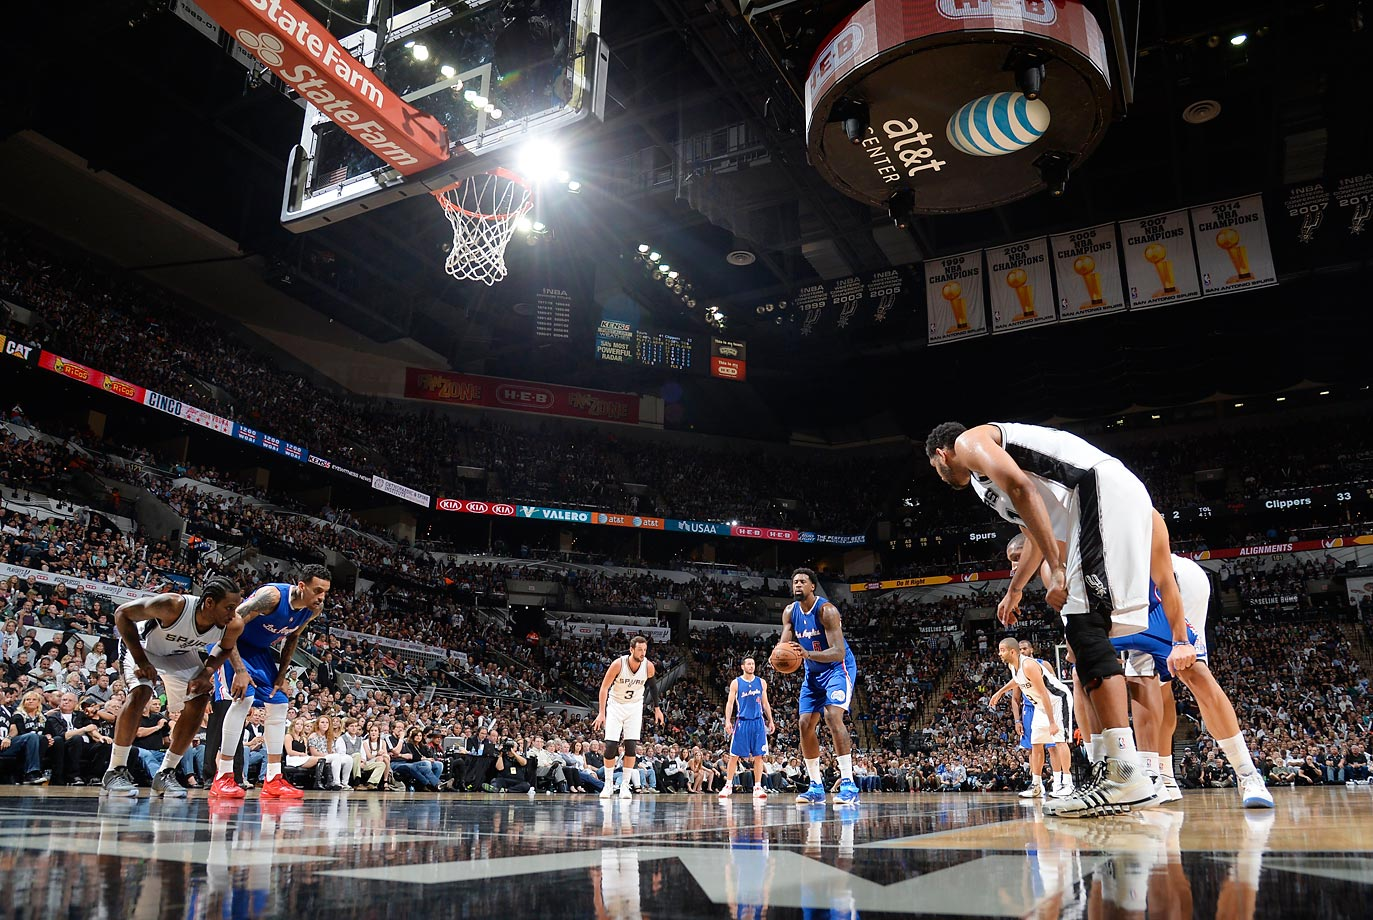 April 30, 2015 against the San Antonio Spurs.